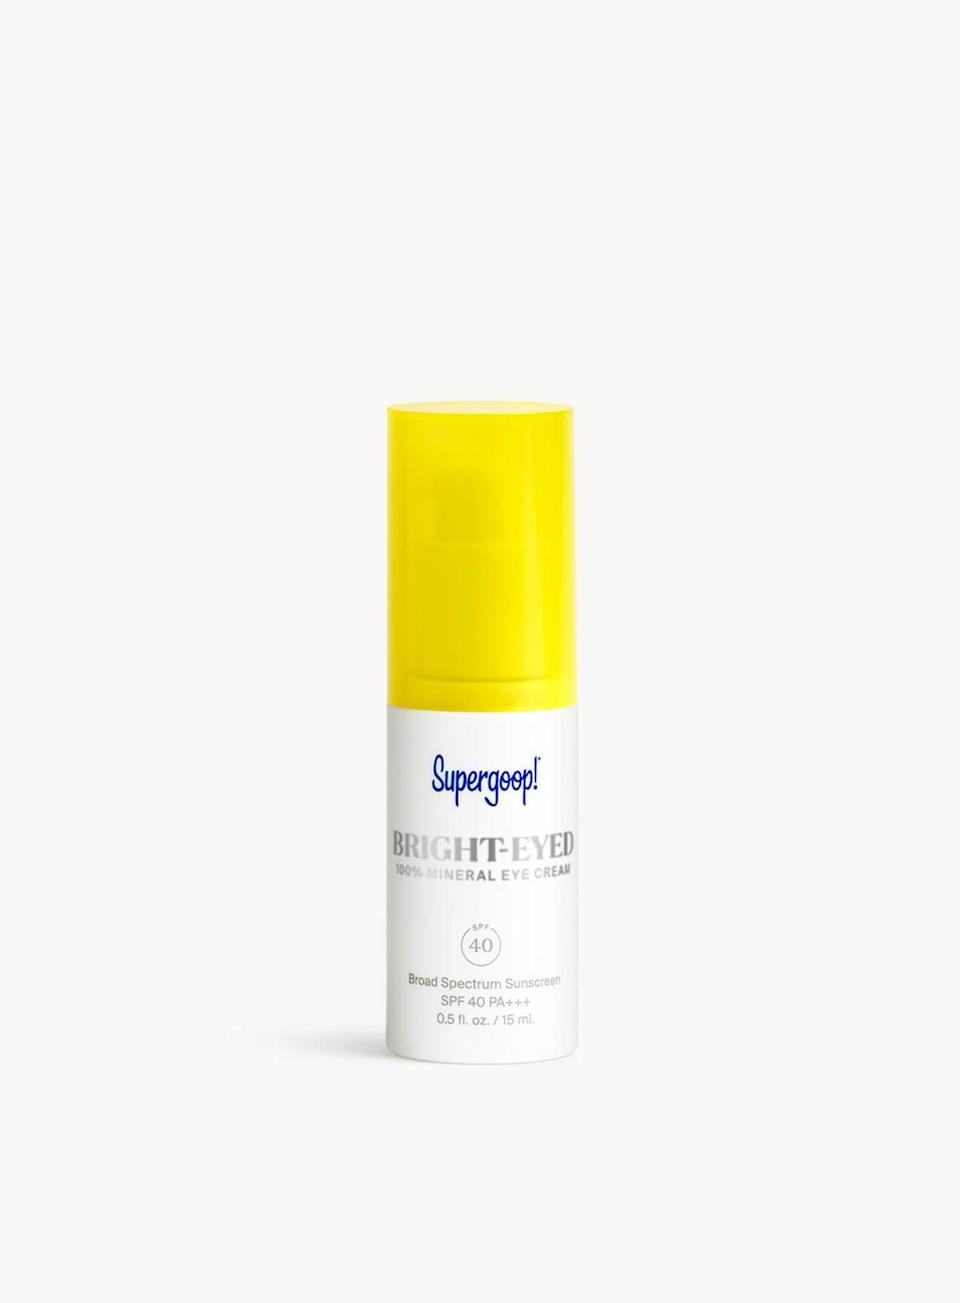 "<h3>Supergoop! Bright-Eyed 100% Mineral Eye Cream SPF 40</h3><br>Leave it to <a href=""https://www.refinery29.com/en-us/2018/08/205746/supergoop-sunscreen-sephora-history"" rel=""nofollow noopener"" target=""_blank"" data-ylk=""slk:sunscreen disruptor Supergoop!"" class=""link rapid-noclick-resp"">sunscreen disruptor Supergoop!</a> to create an eye cream with 100% zinc oxide that absorbs instantly with zero white cast. Not only does it blend in seamlessly to visually brighten the area, but it protects from UV rays and blue light, too.<br><br><strong>Supergoop!</strong> Bright-Eyed 100% Mineral Eye Cream SPF 40, $, available at <a href=""https://go.skimresources.com/?id=30283X879131&url=https%3A%2F%2Fwww.sephora.com%2Fproduct%2Fsupergoop-bright-eyed-100-mineral-eye-cream-spf-40-P453226%3FskuId%3D2315190%23locklink"" rel=""nofollow noopener"" target=""_blank"" data-ylk=""slk:Sephora"" class=""link rapid-noclick-resp"">Sephora</a>"